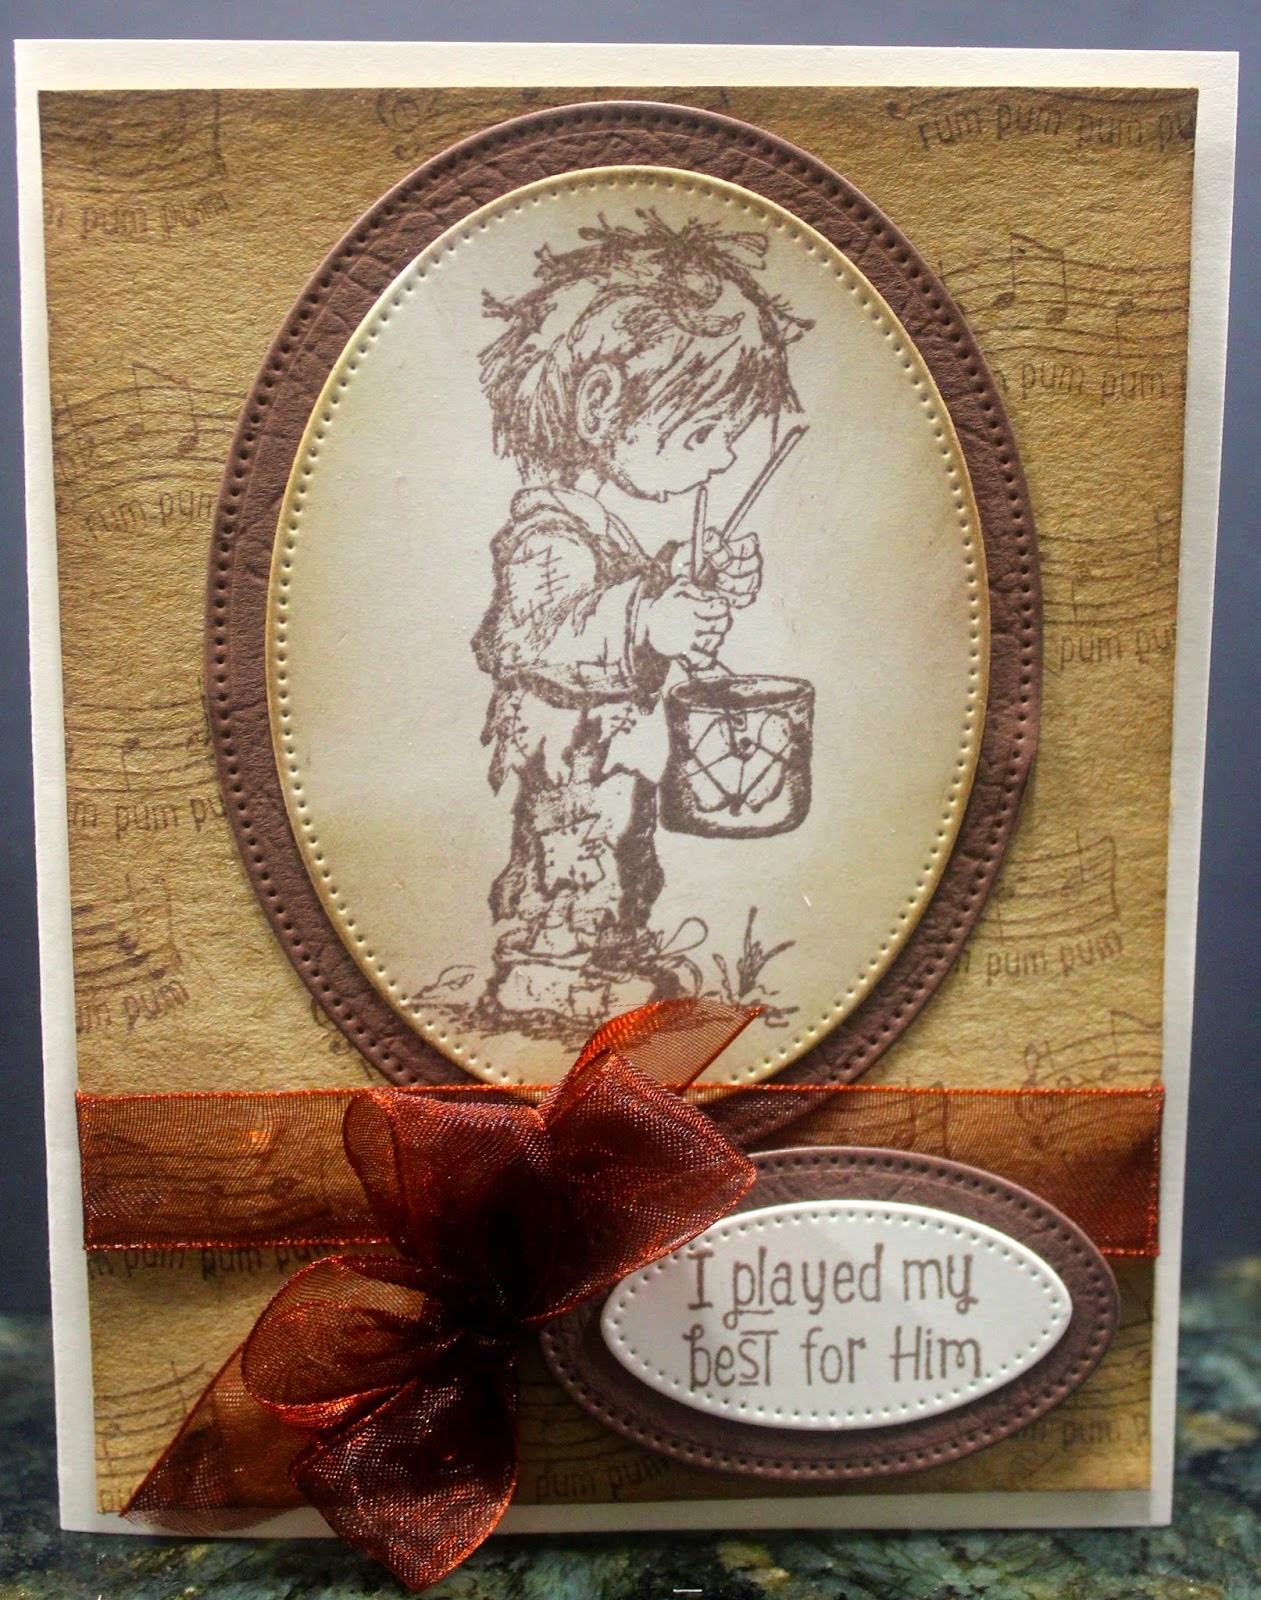 ODBD Little Drummer Boy, ODBD Customer Card of the Day by Rita Kegg